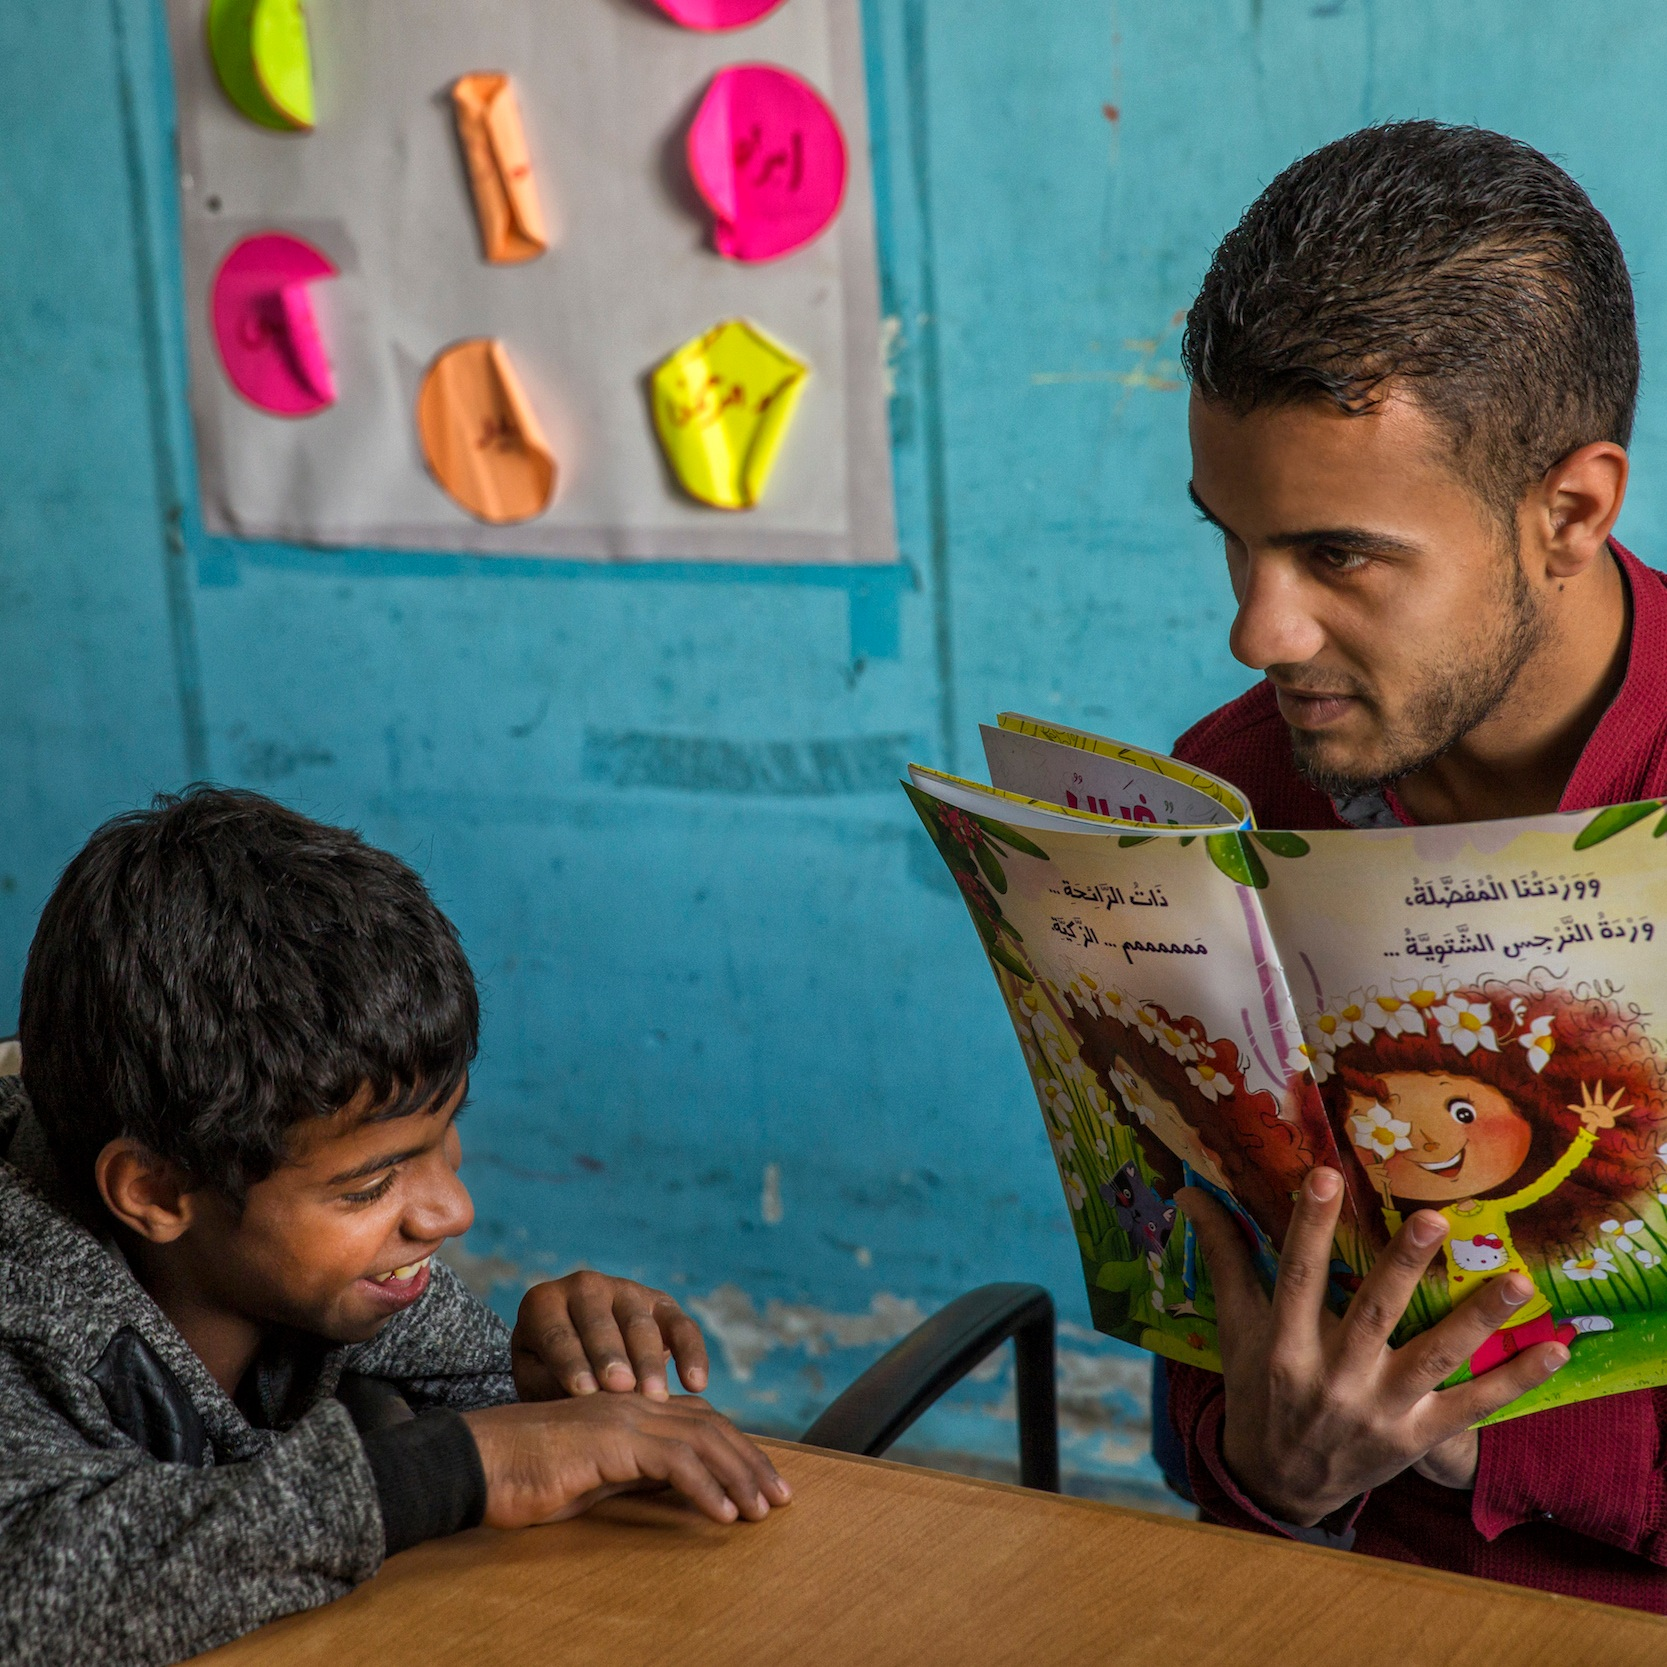 SYRIA: WE LOVE READING -